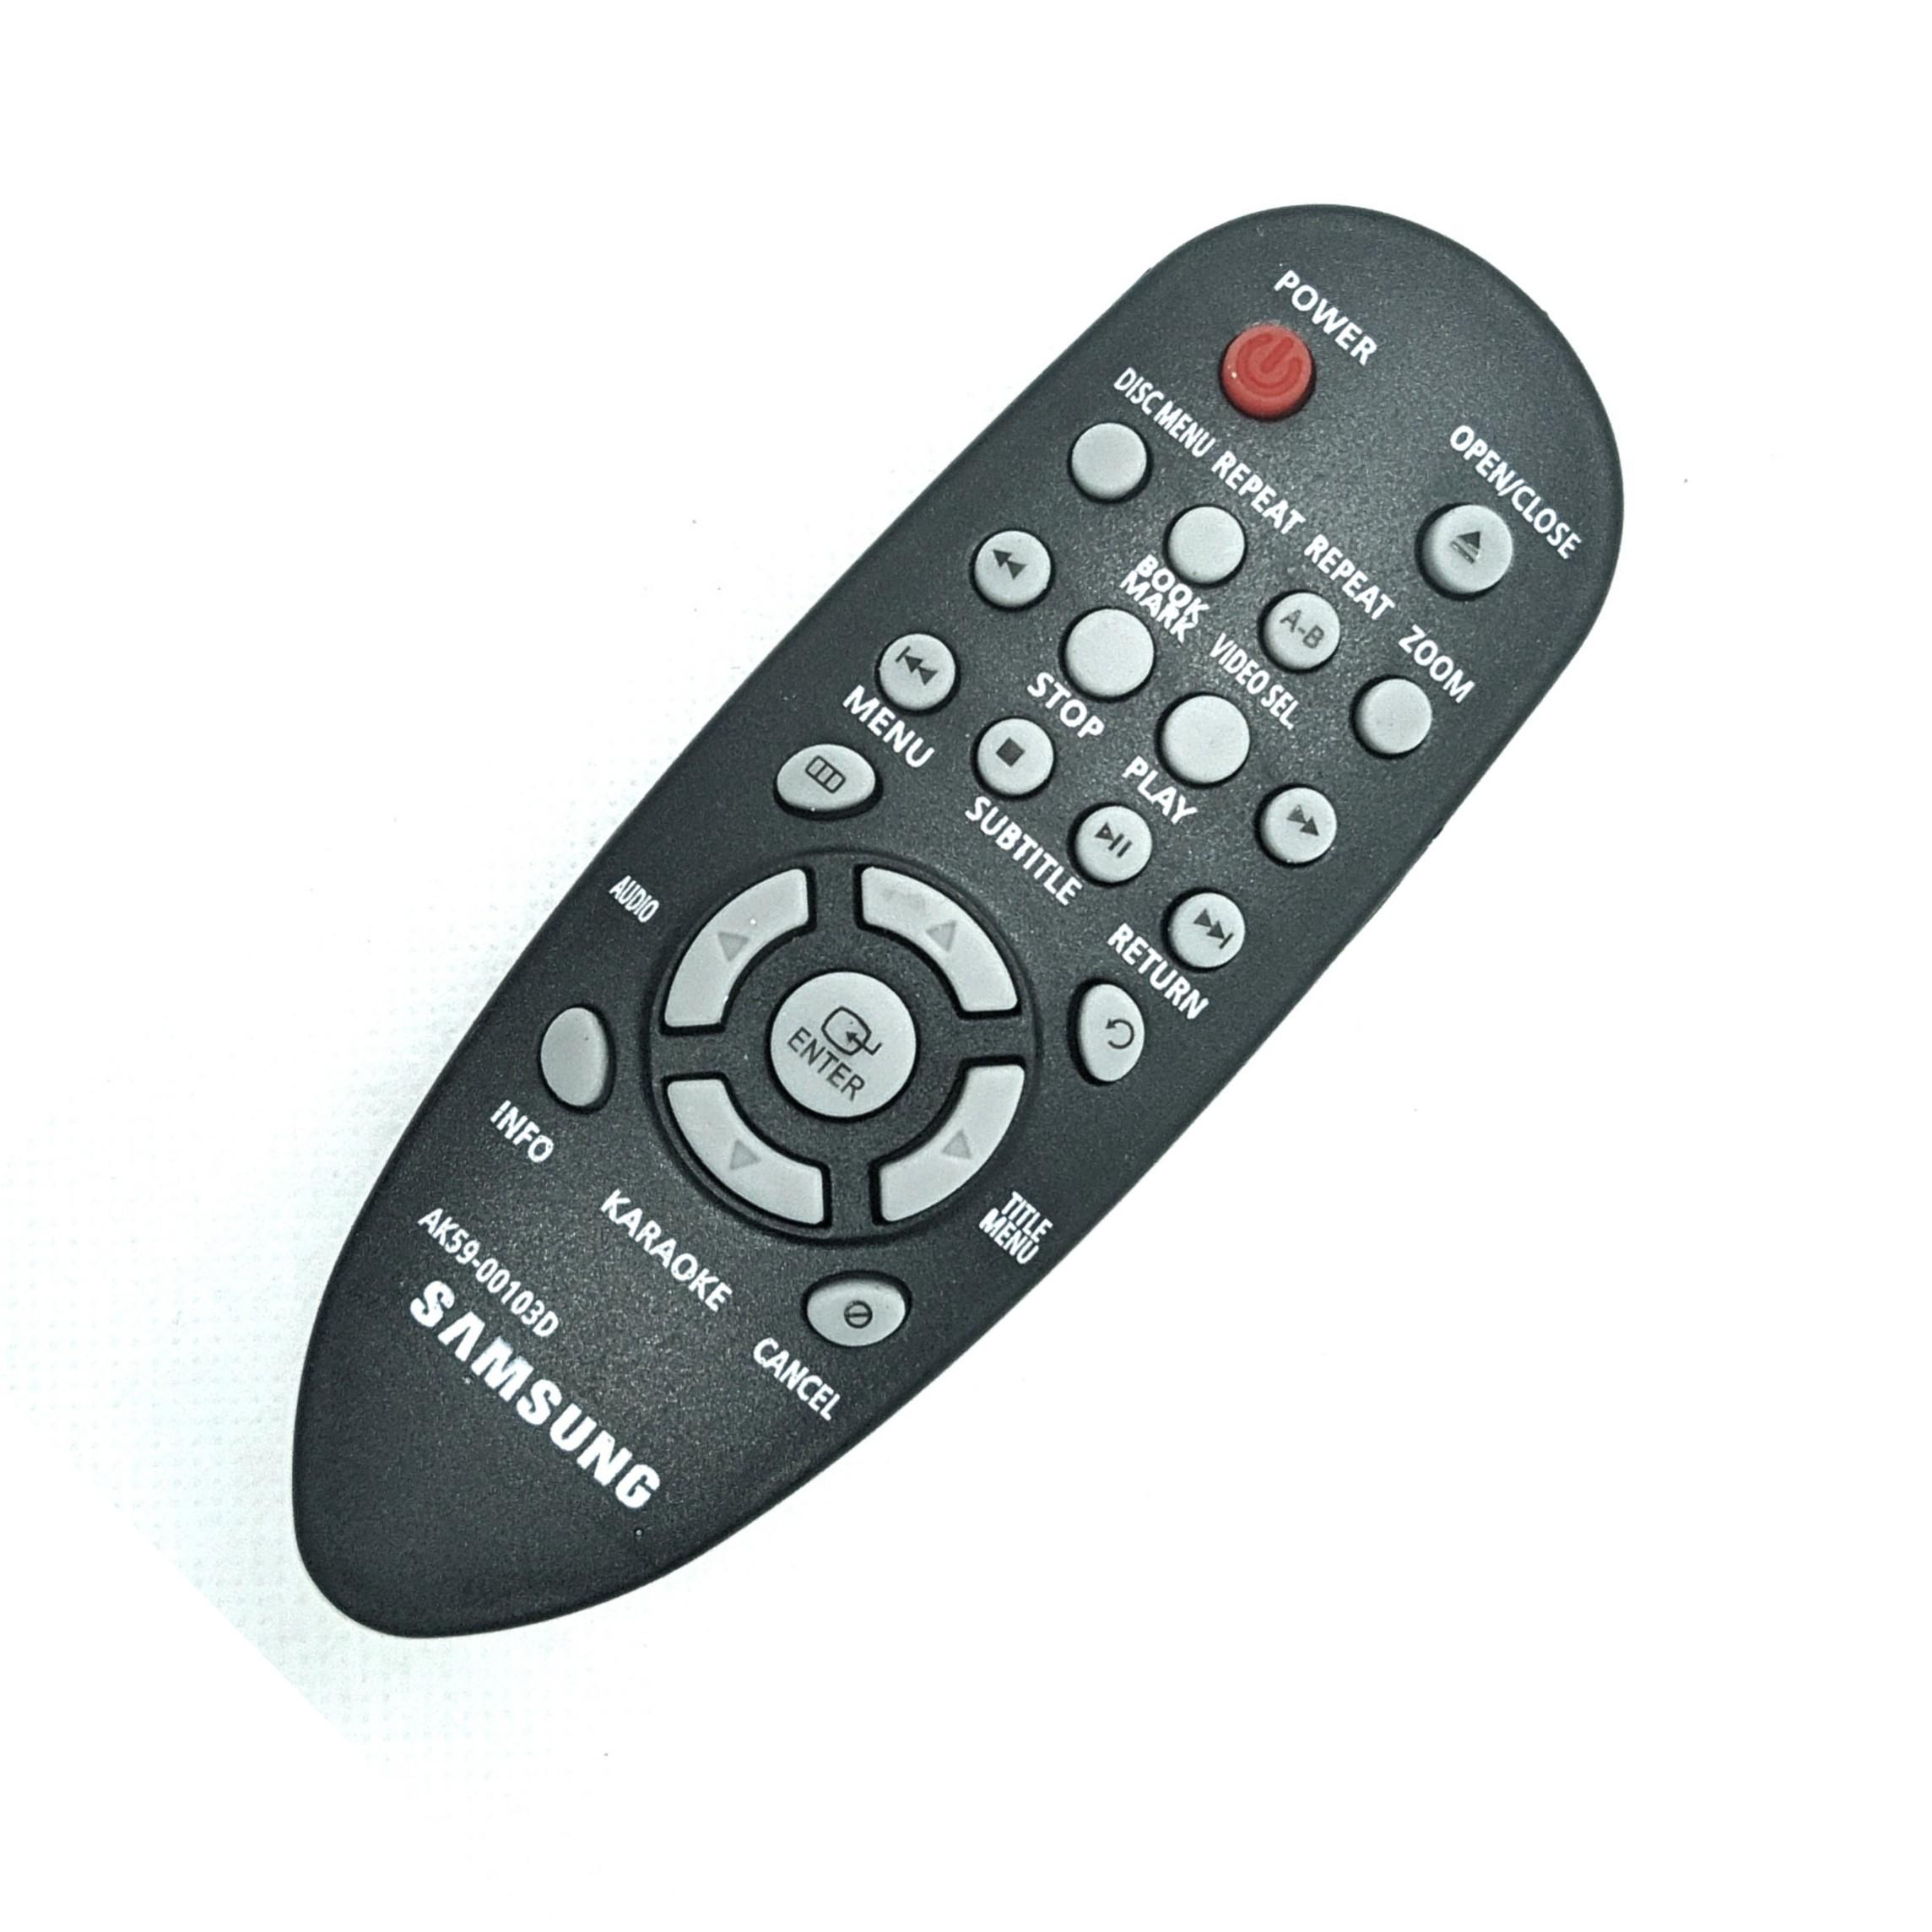 Remote for Samsung DVD Player